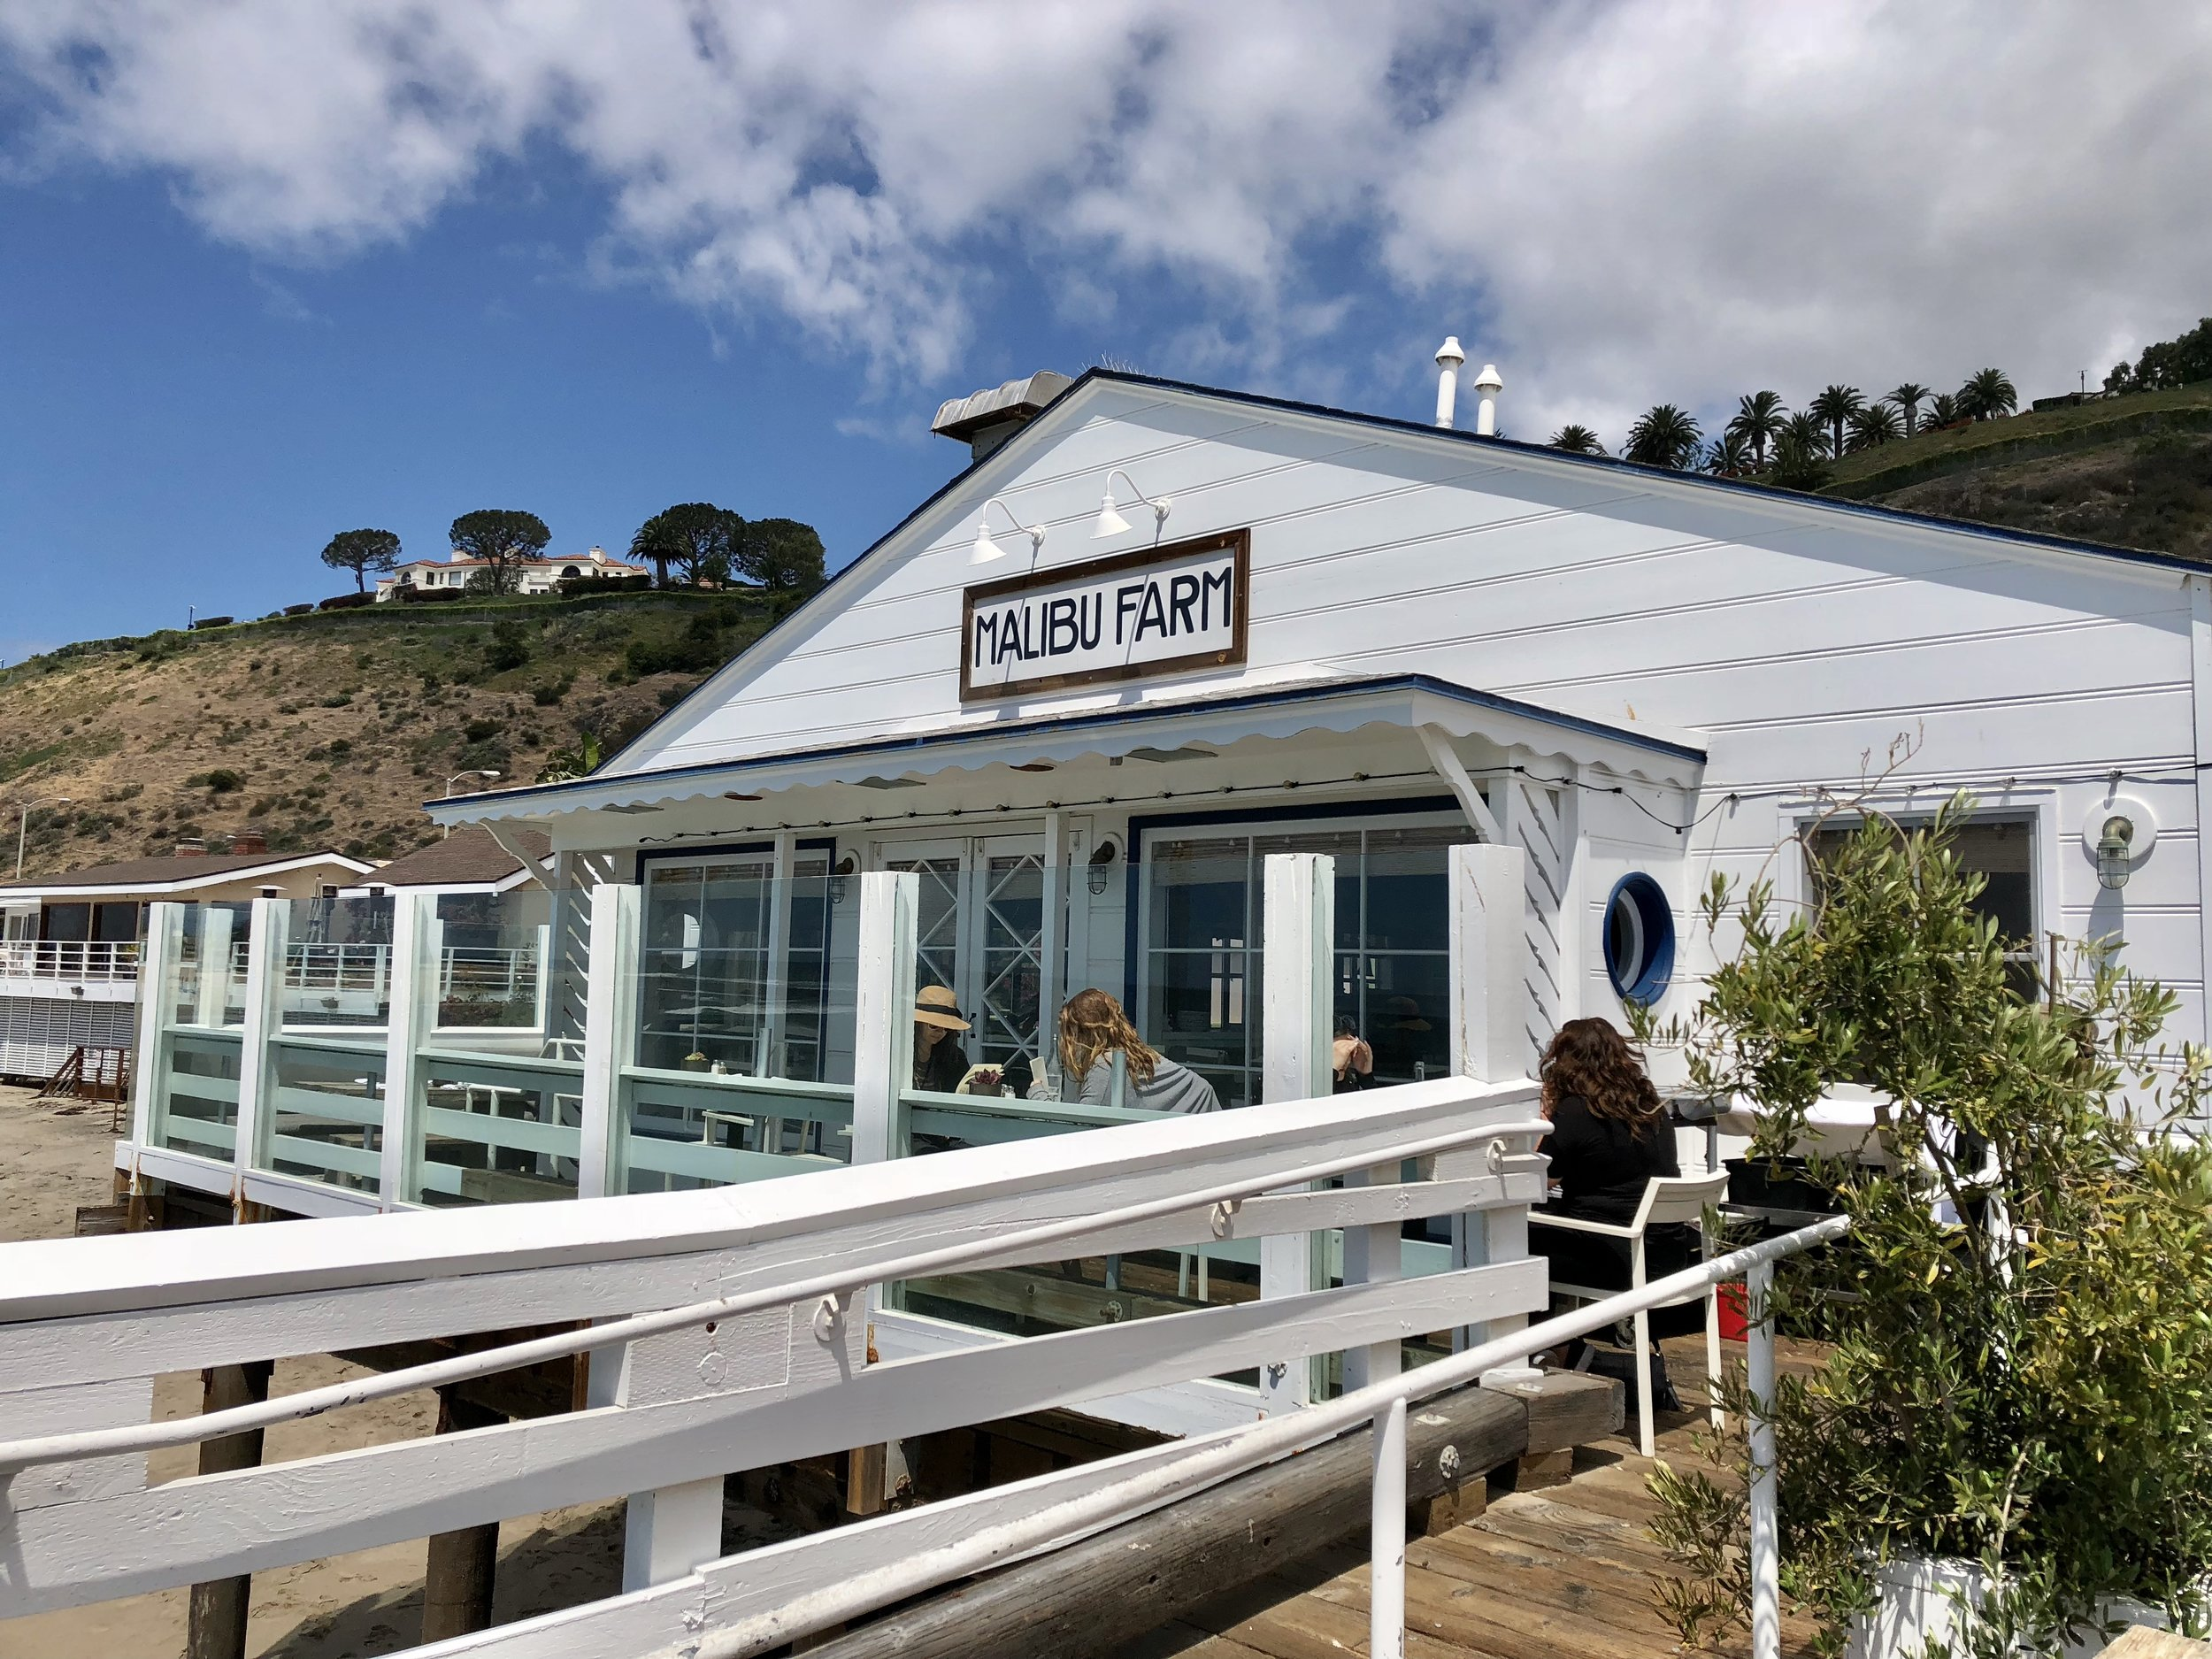 Malibu Farms Restaurant (I went to the cafe)